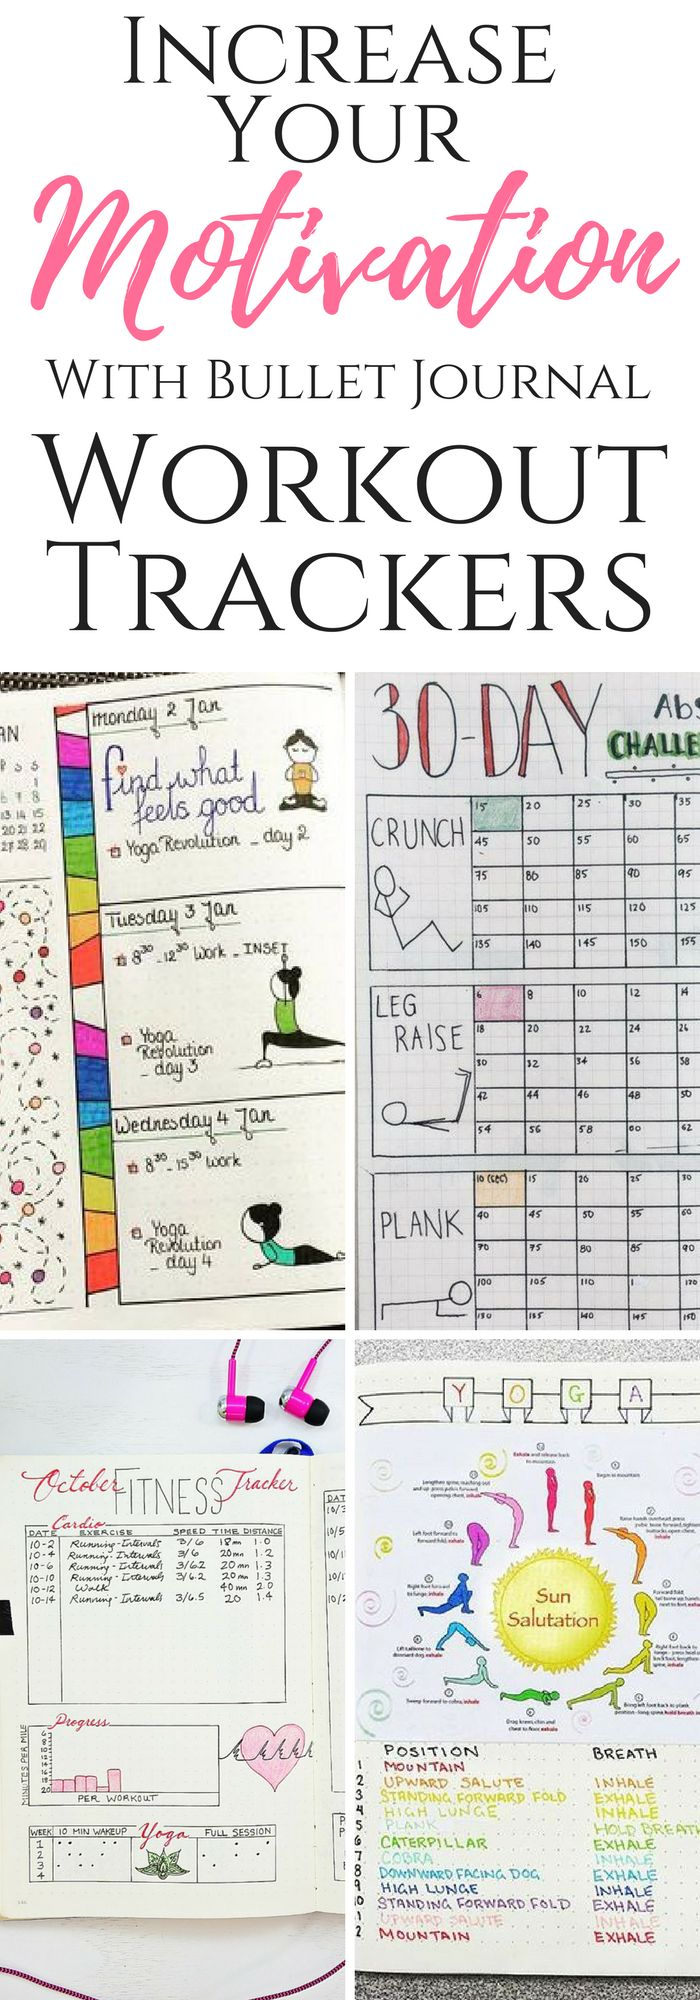 19 Best Bullet Journal Ideas for Workout Trackers and Weight Loss